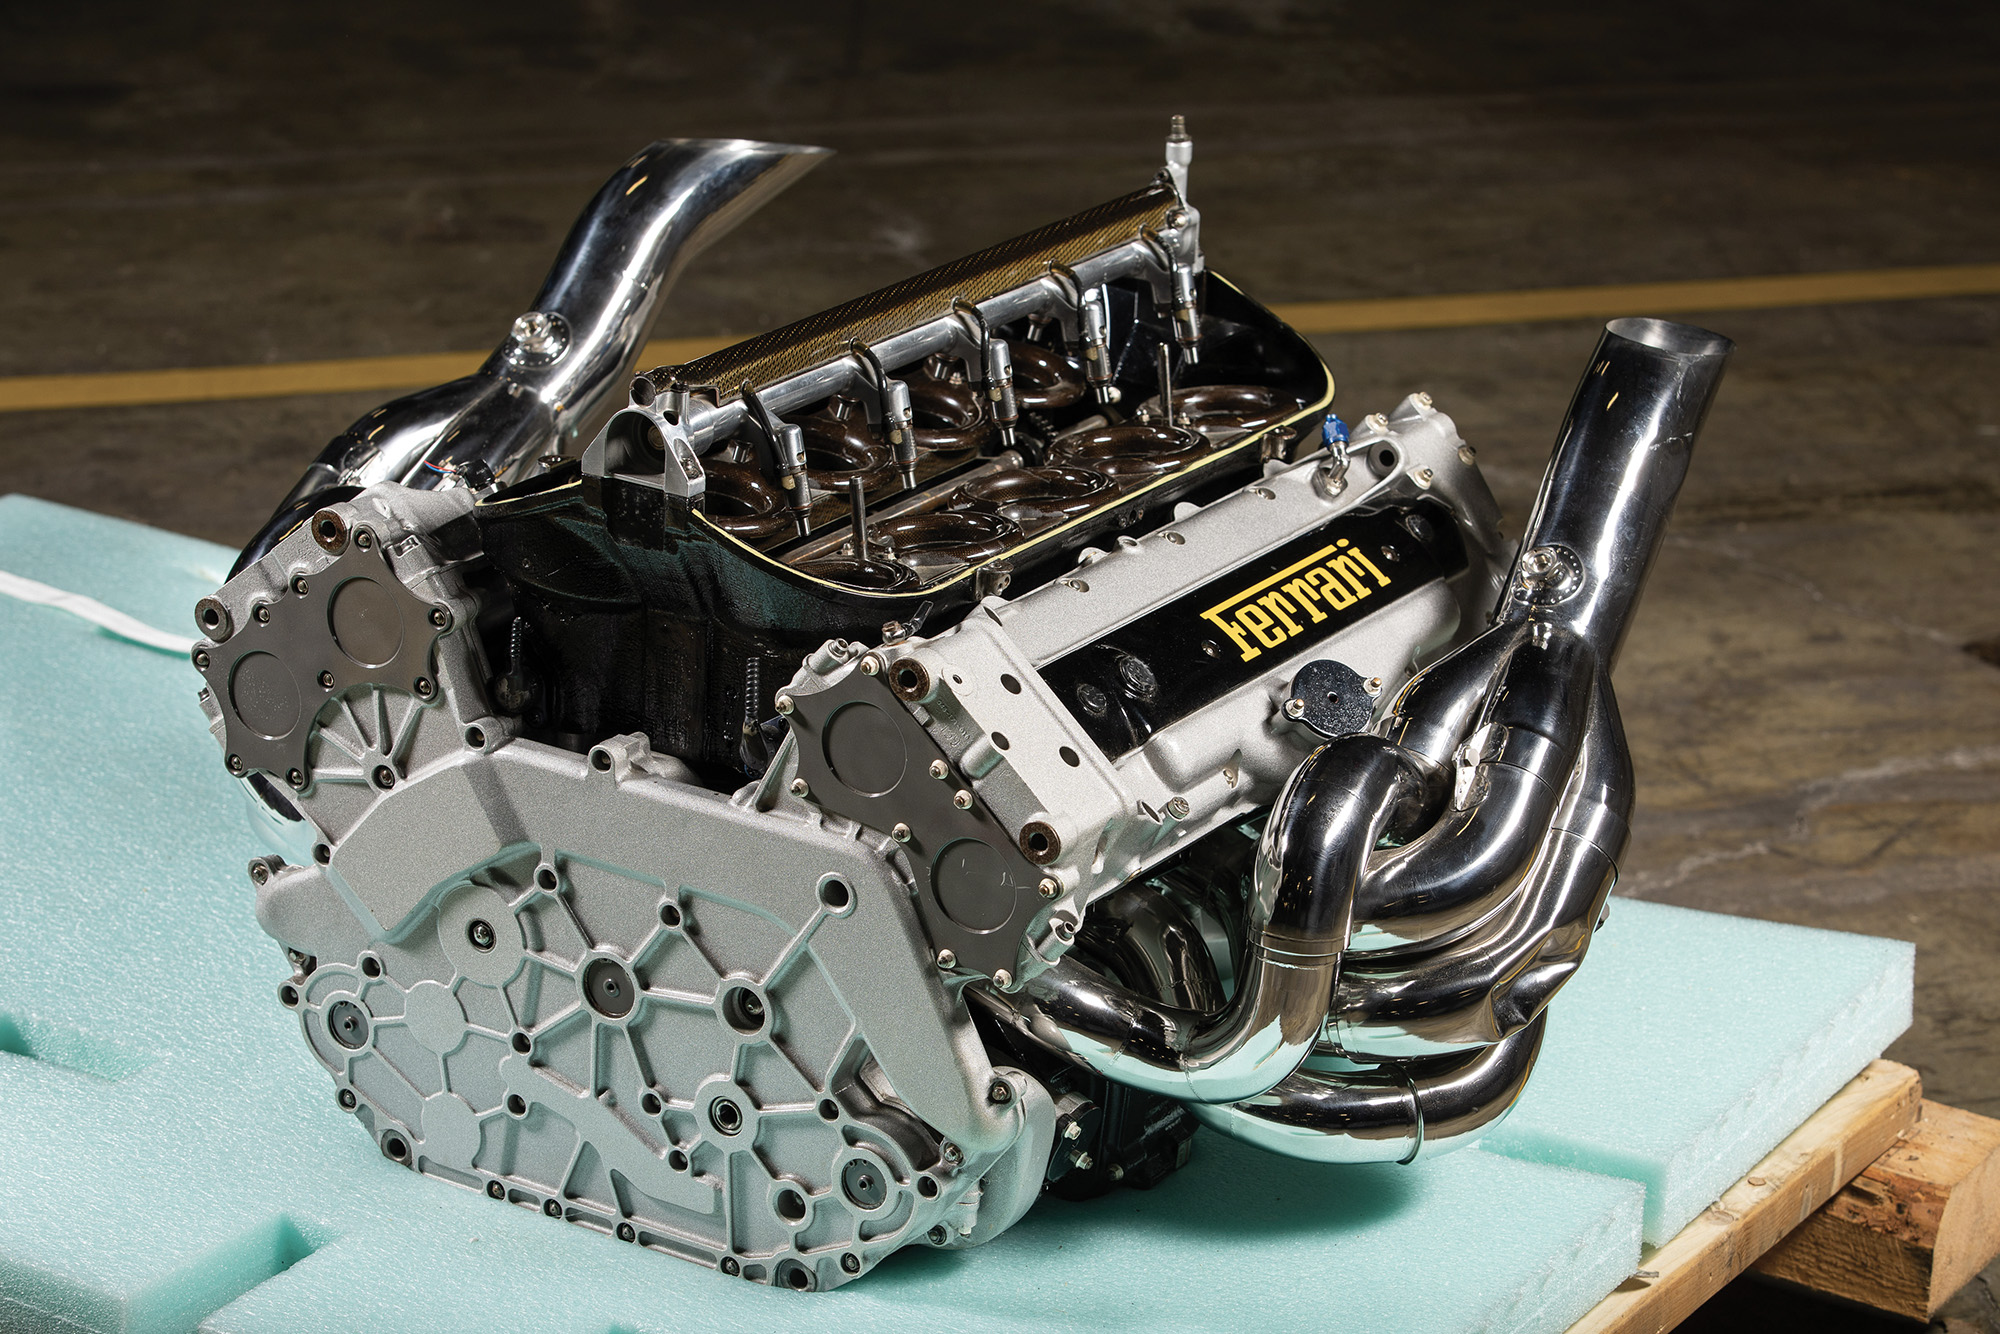 Ferrari F2002 engine sold for $93,600 in a December 2019 auction